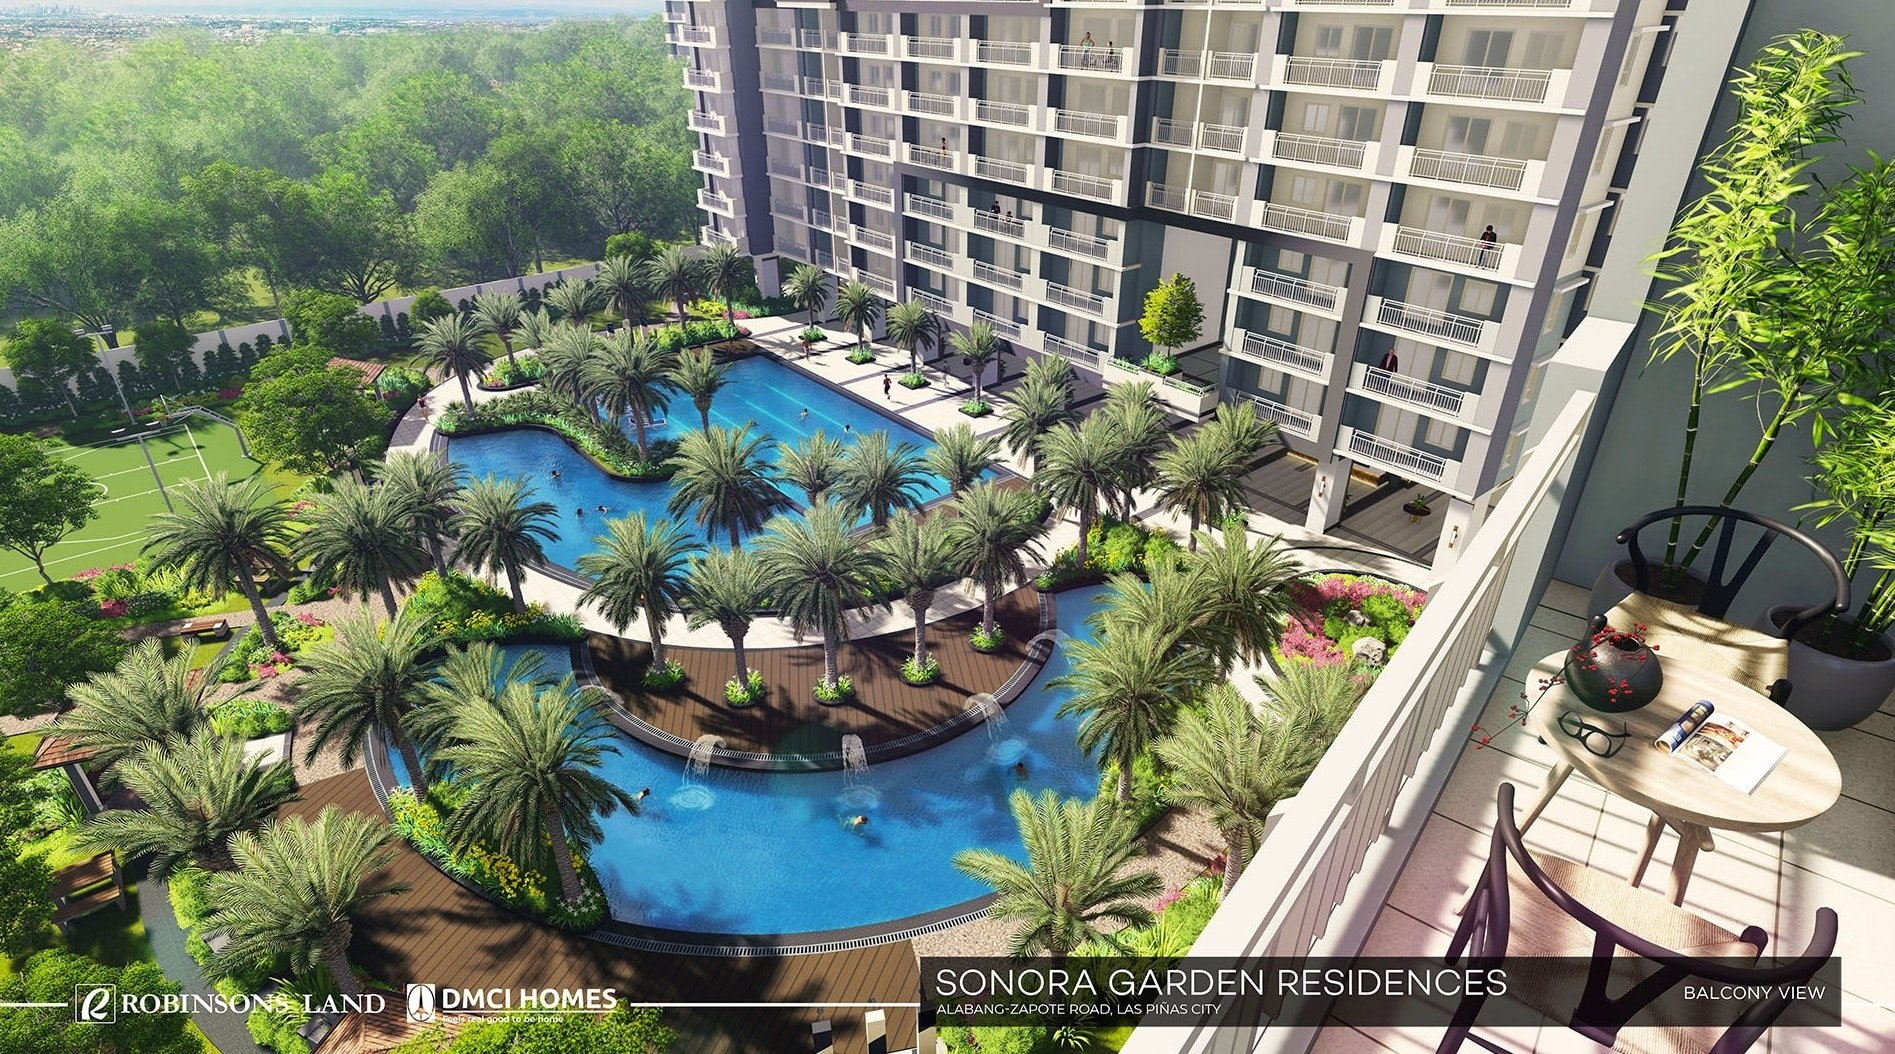 Sonora Garden Residences-Balcony View-large